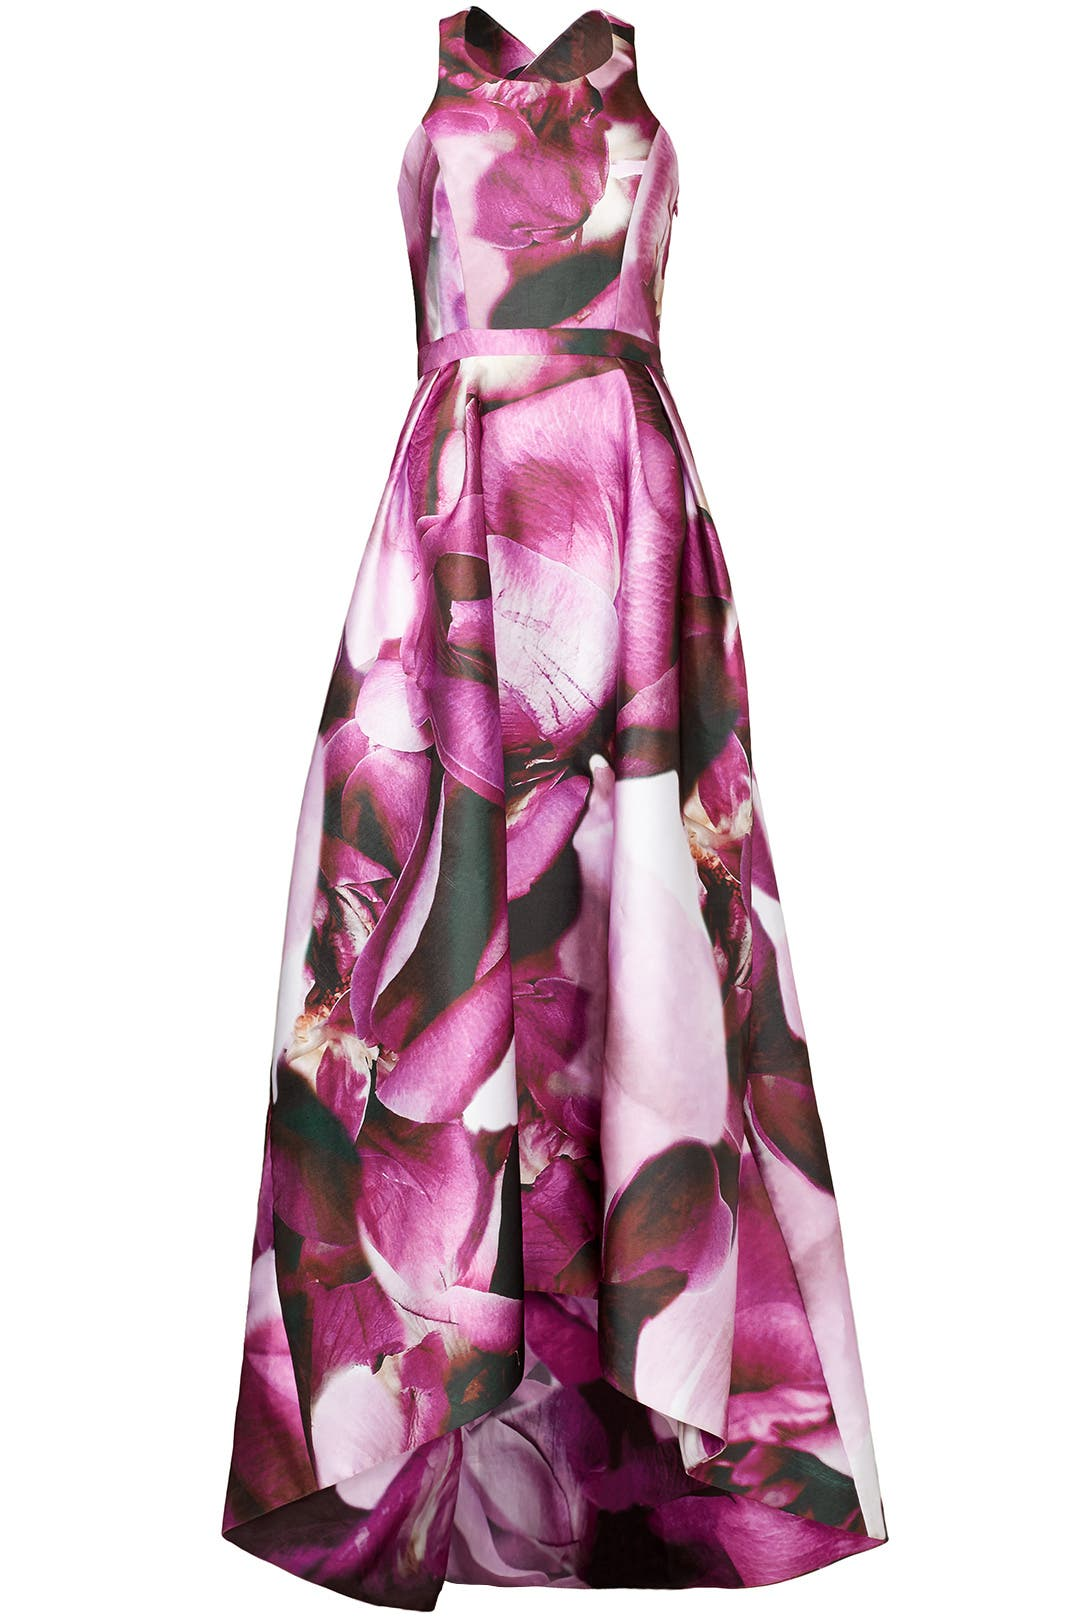 Fuchsia Gown by ML Monique Lhuillier for $80 - $100 | Rent the Runway